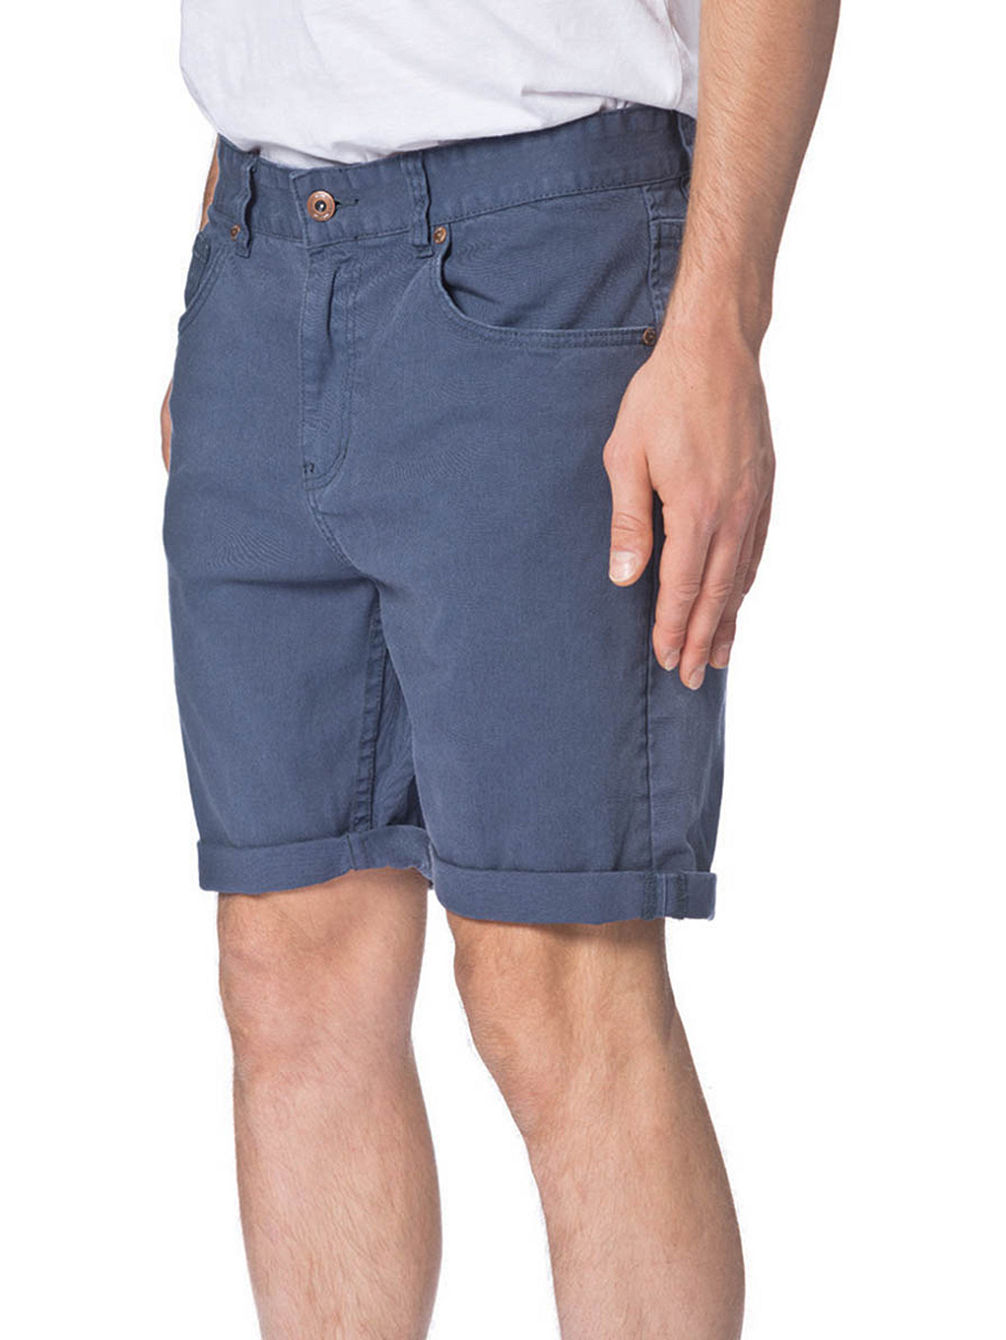 Goodstock Denim Walk Shorts